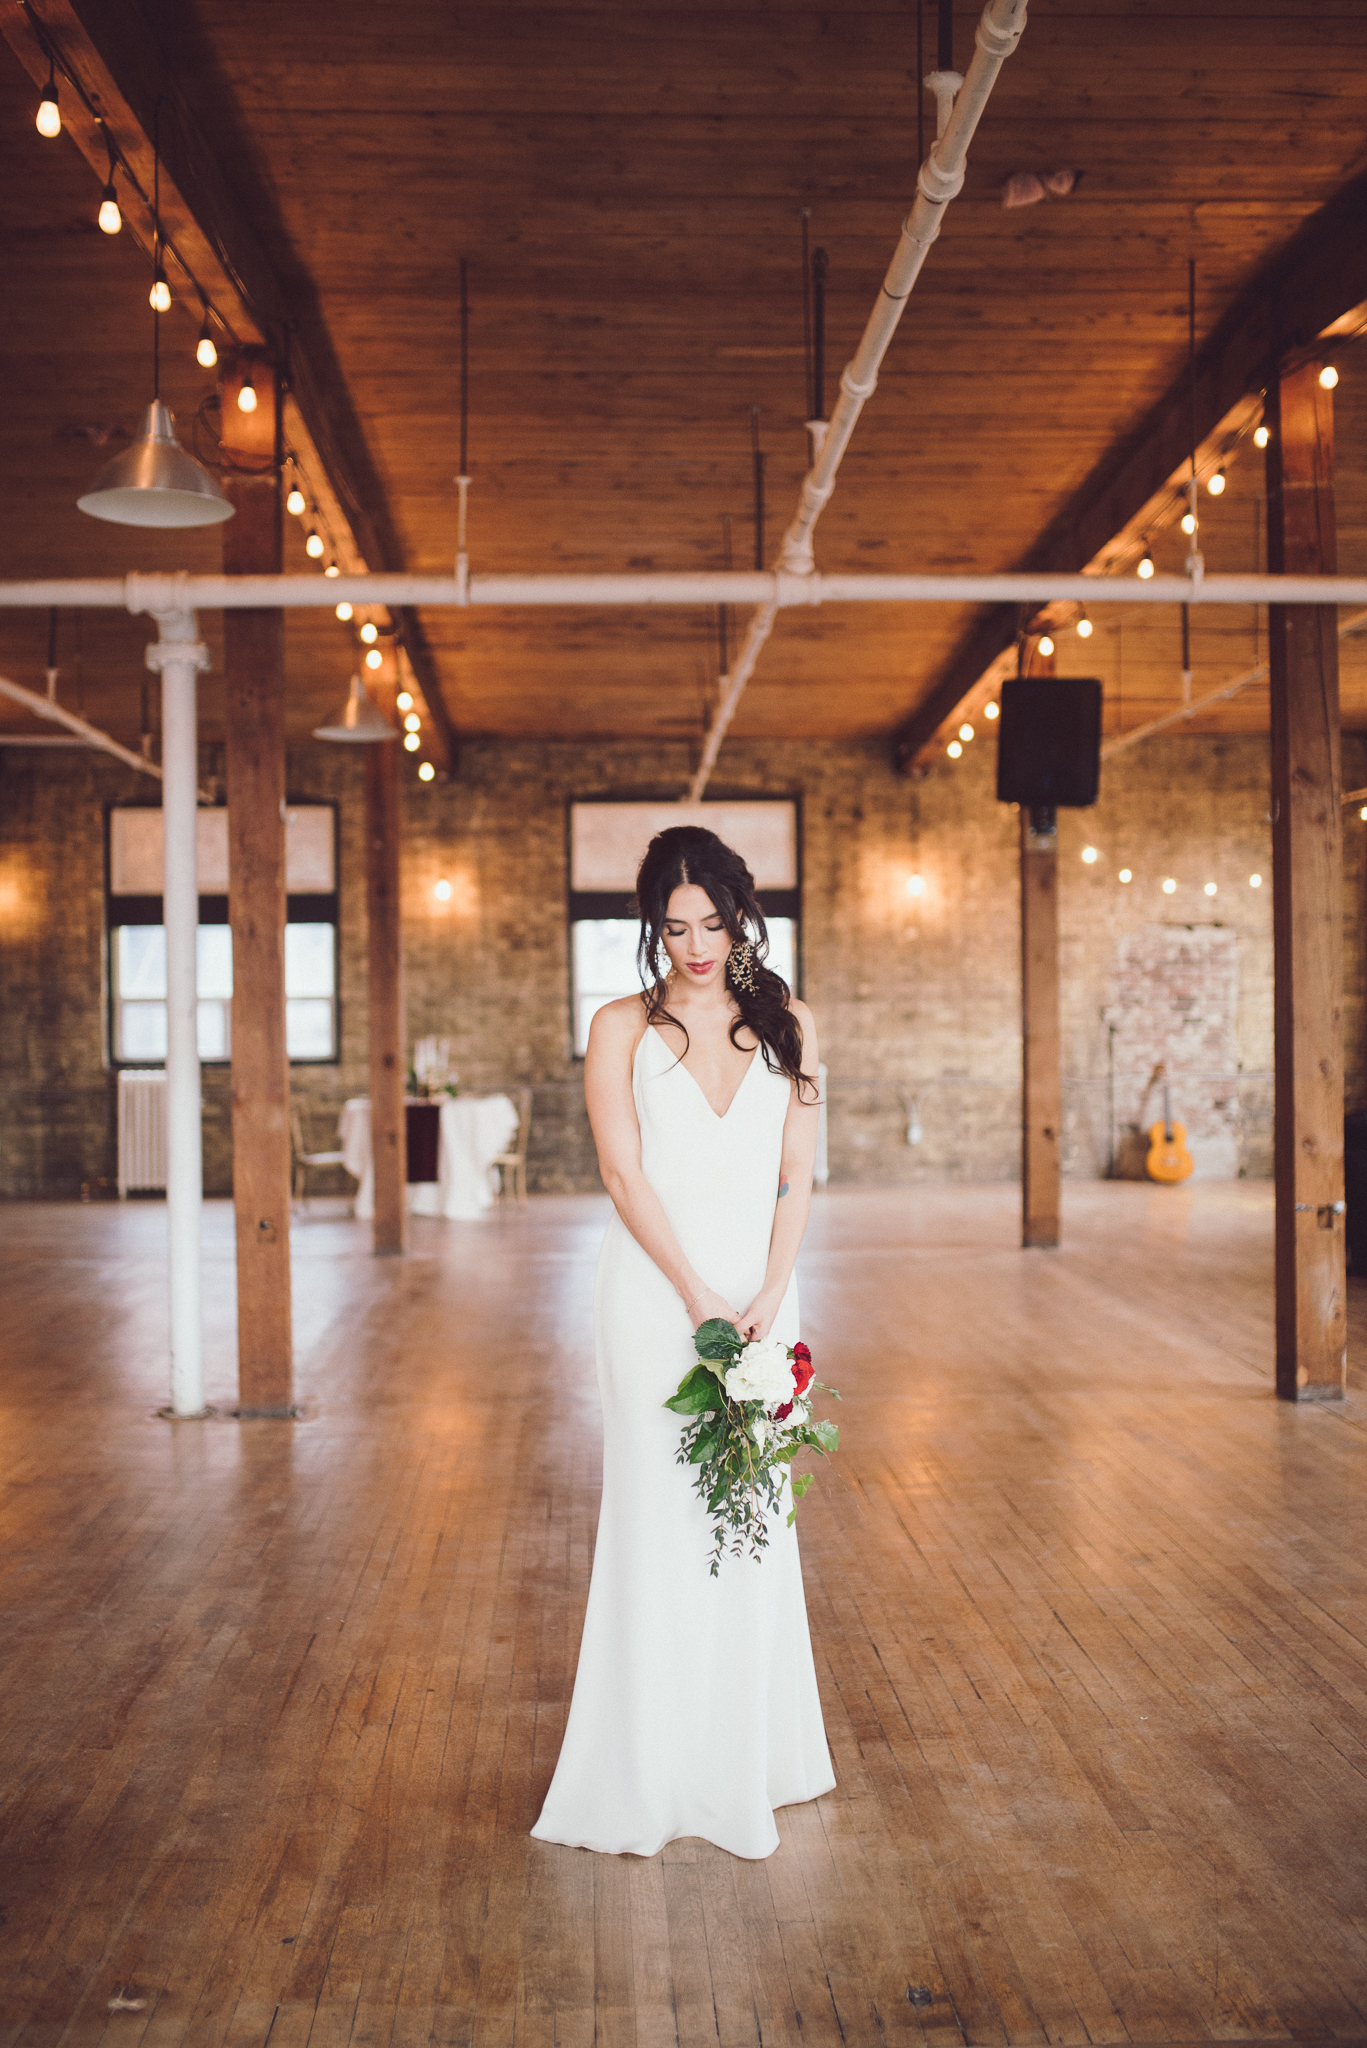 ACphoto_IndustrialWedding-47.jpg